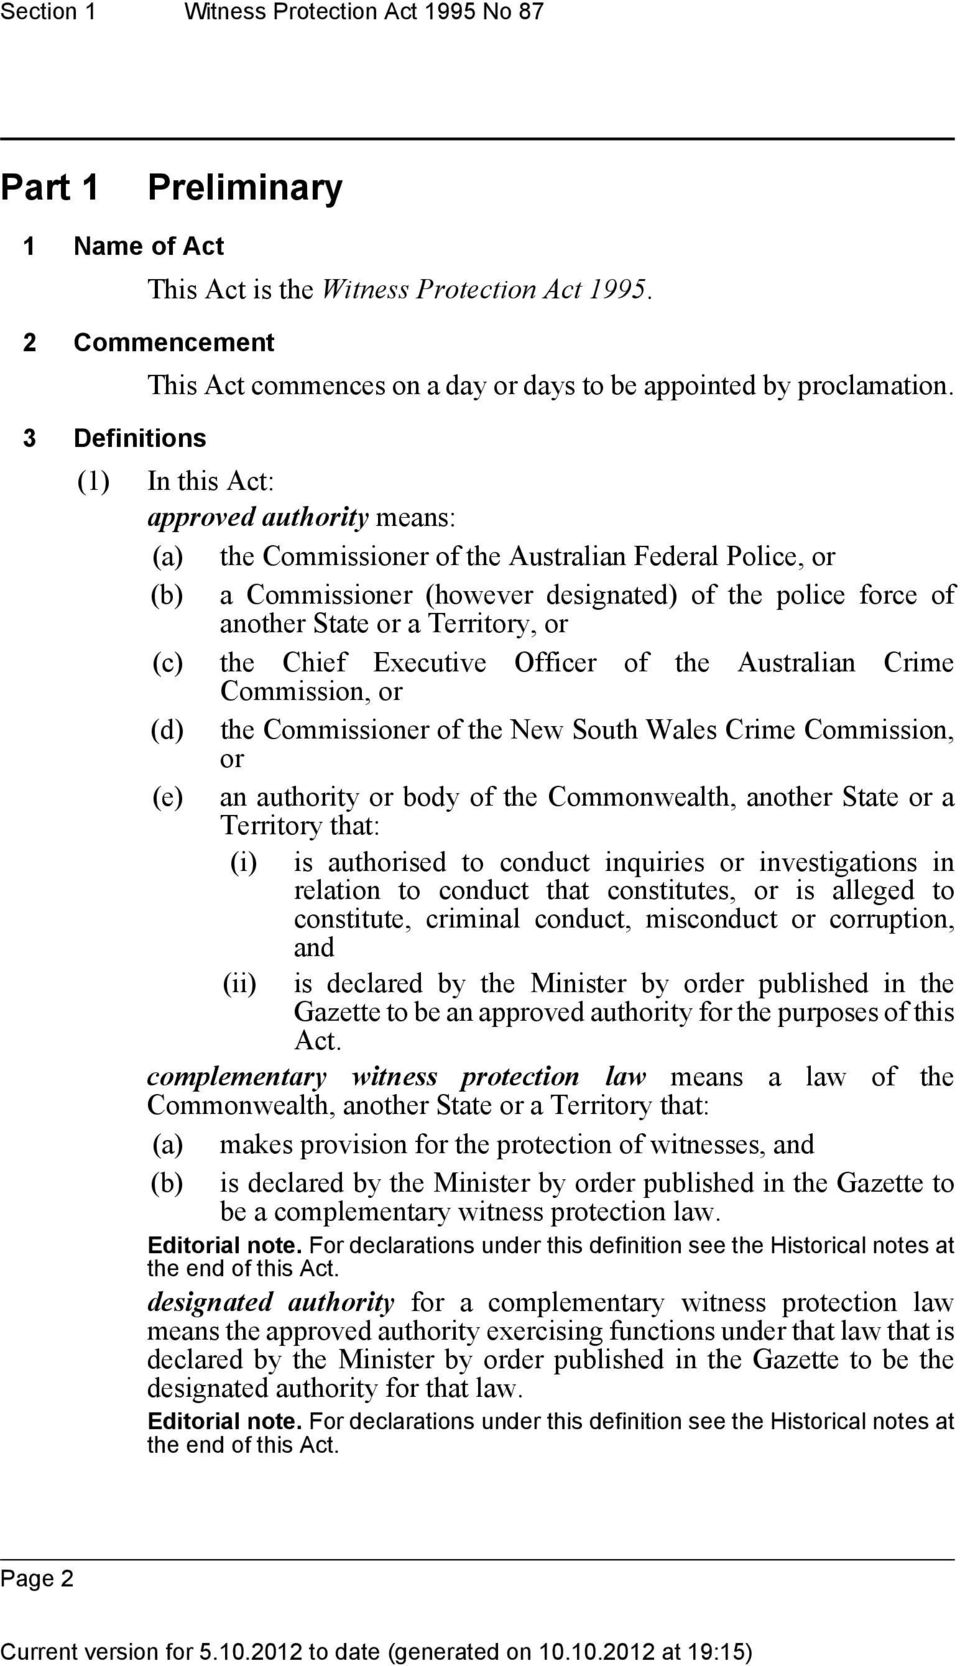 (1) In this Act: approved authority means: (a) the Commissioner of the Australian Federal Police, or (b) a Commissioner (however designated) of the police force of another State or a Territory, or